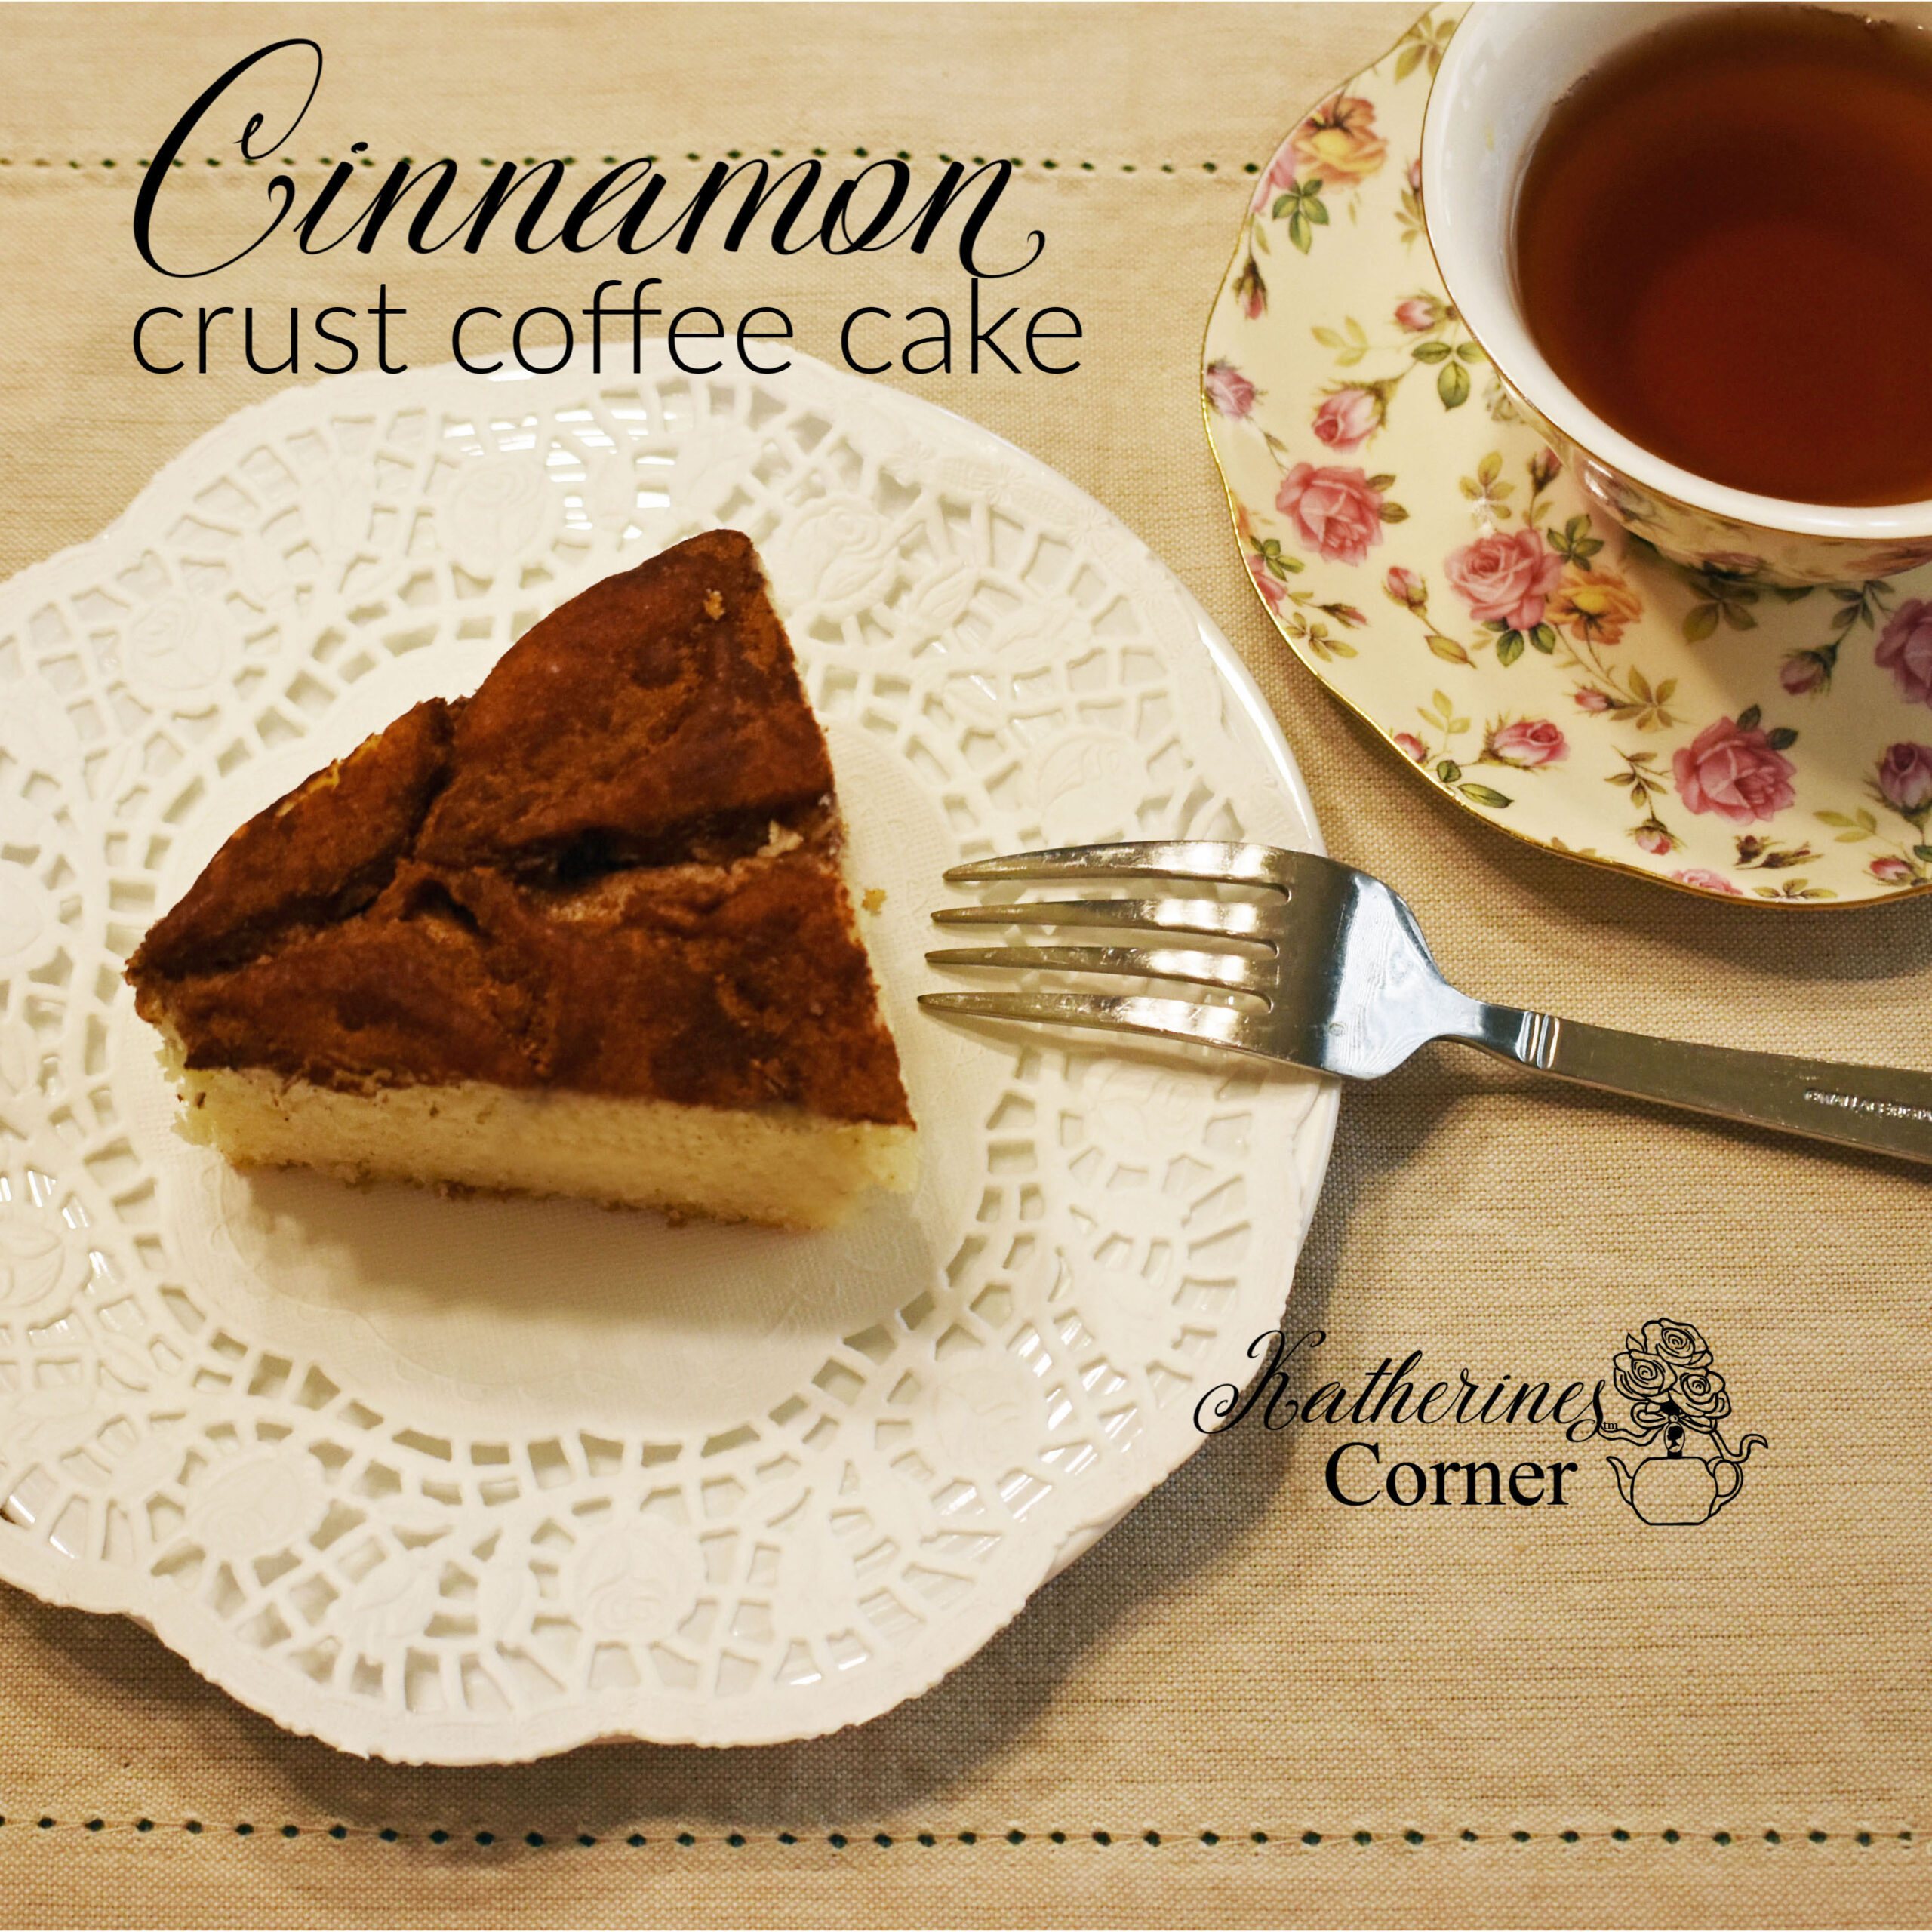 Cinnamon Crust Coffee Cake